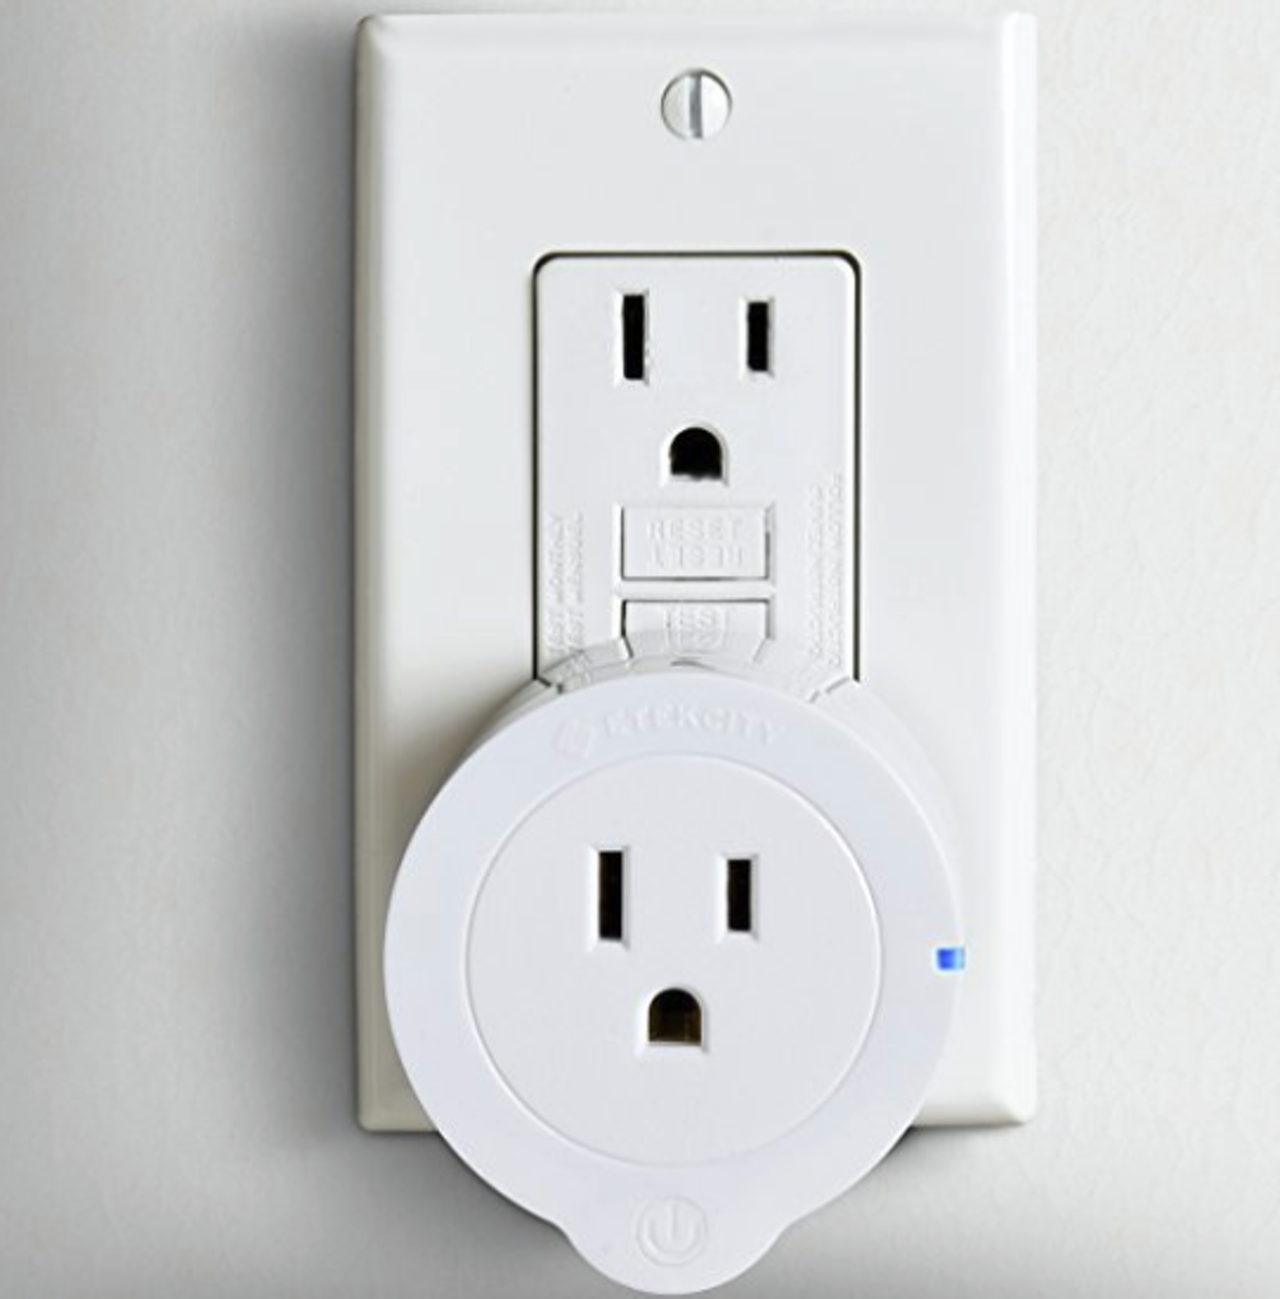 I recommend a Wi-Fi plug for your air conditioner | The Outline